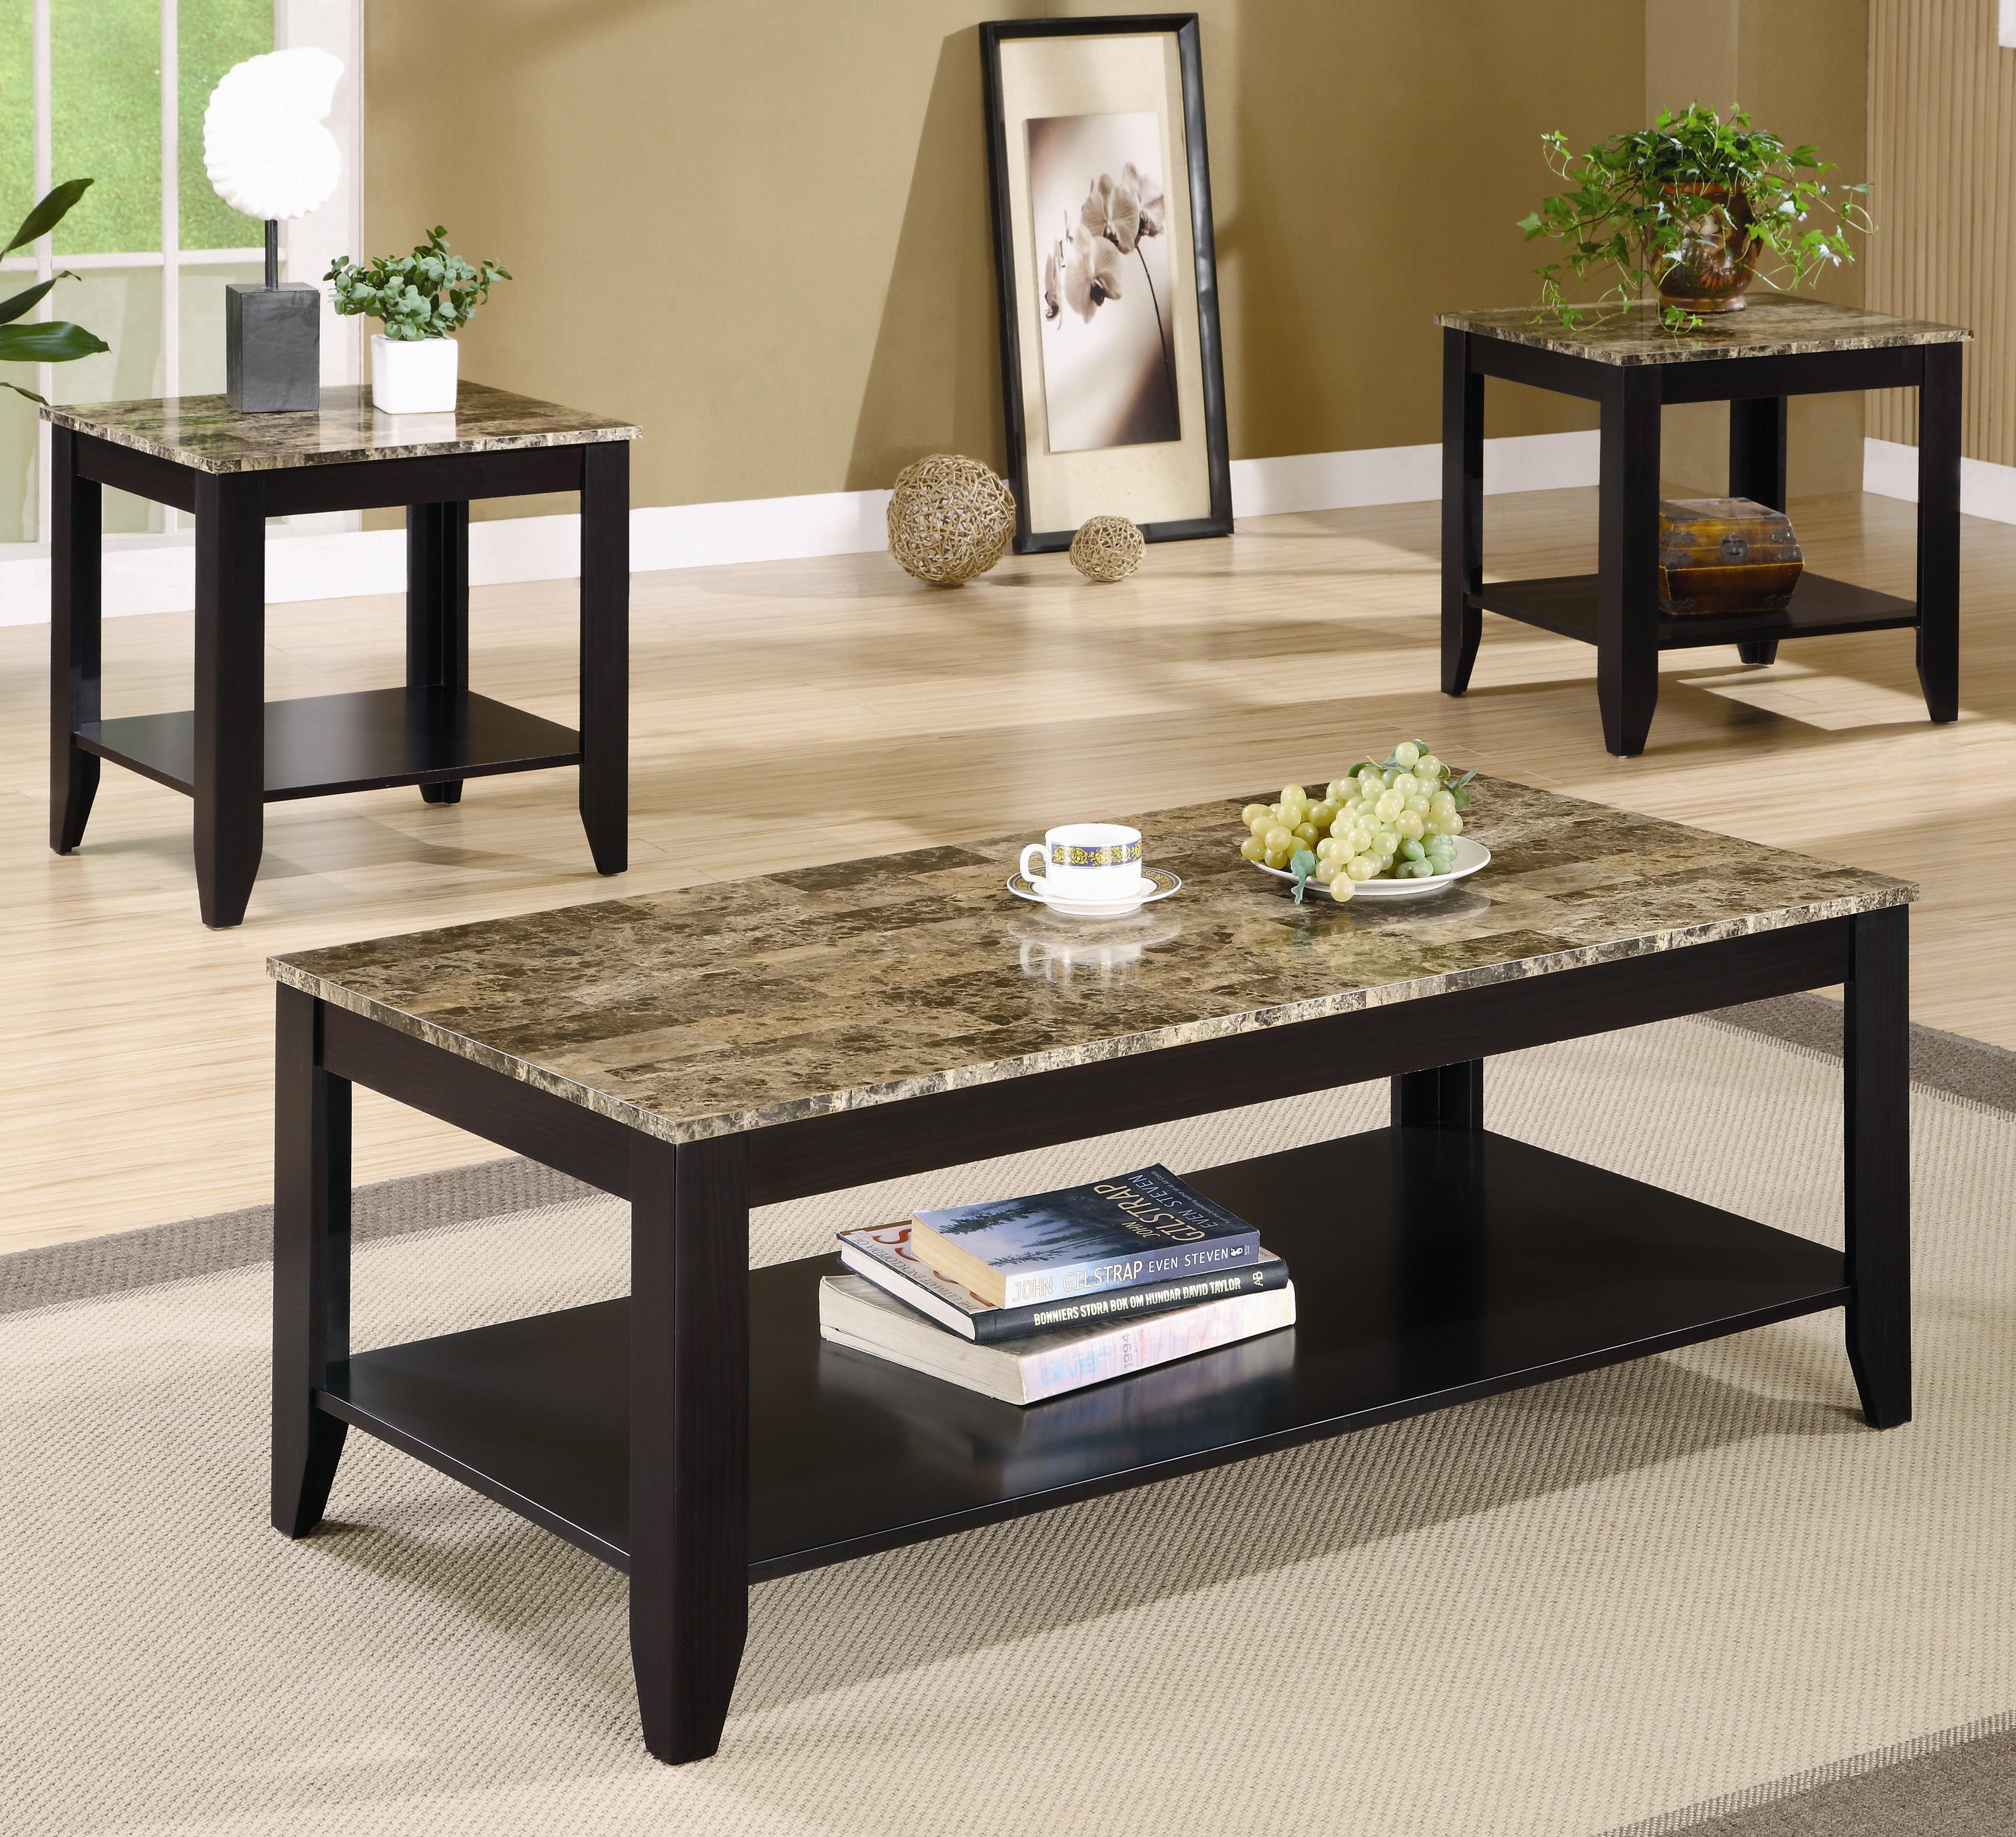 Coaster Occasional Table Sets 700155 3 Piece Occasional Table Set with Table Sets Living Room